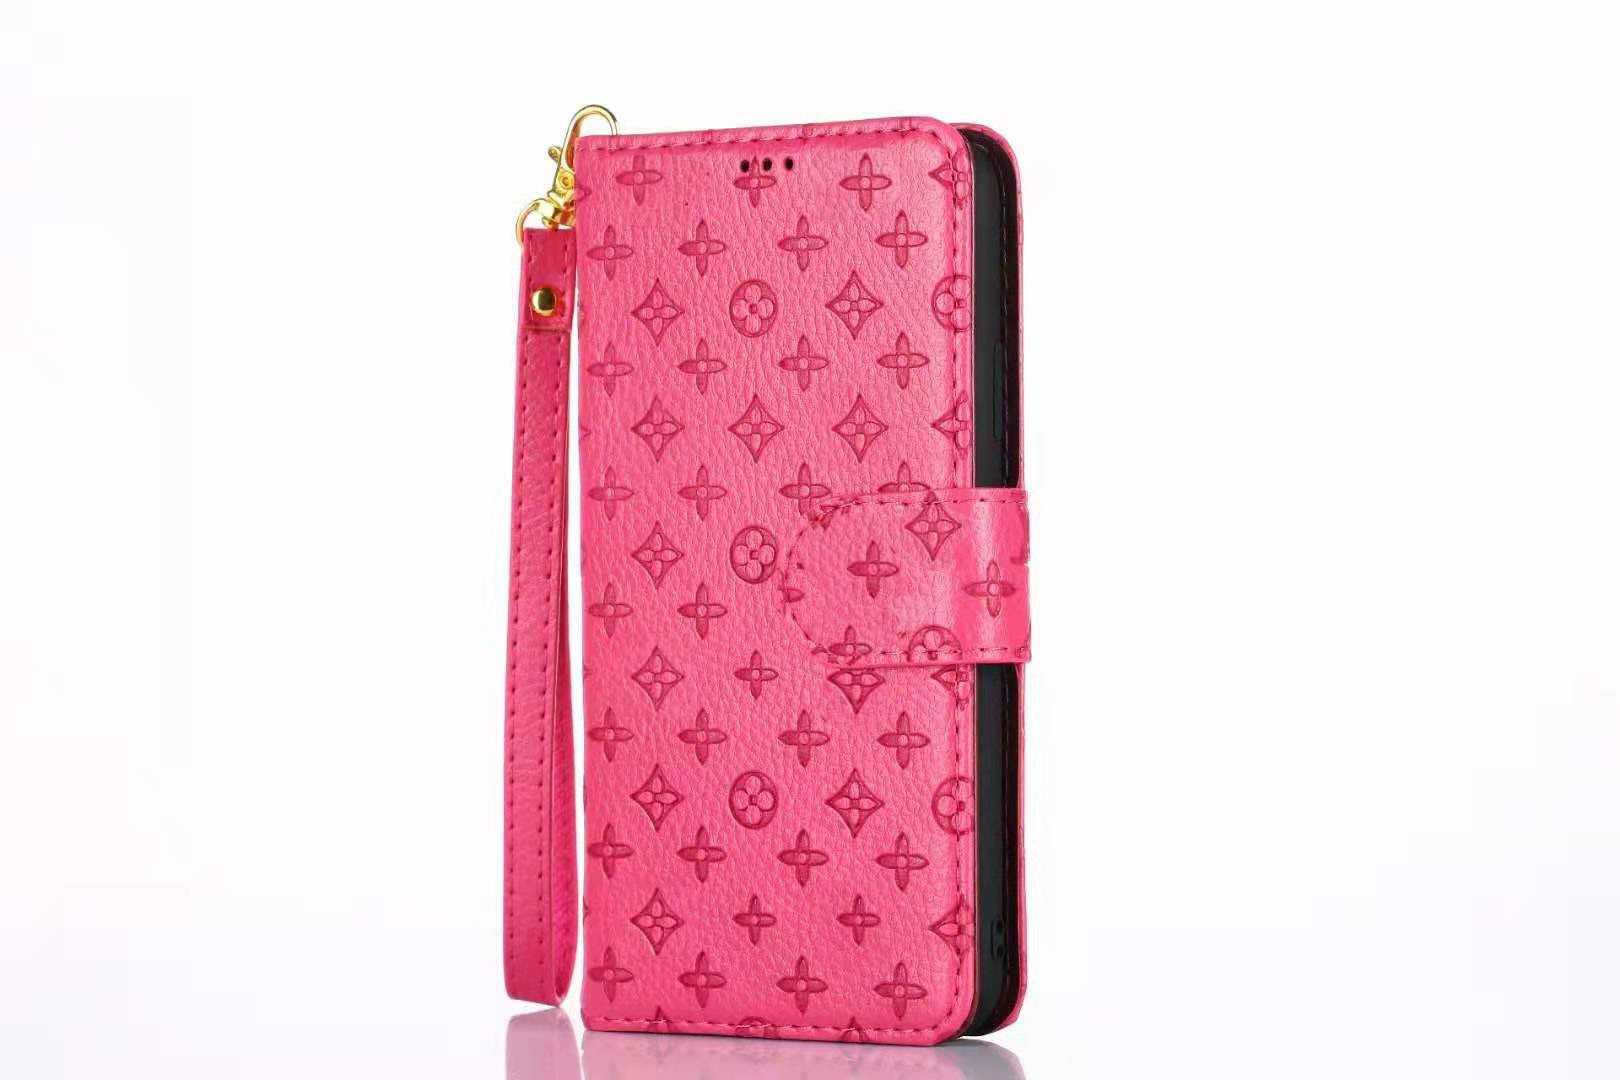 Luxurious Wallet Series For Apple iPhone iPhone 6/6s- Pink